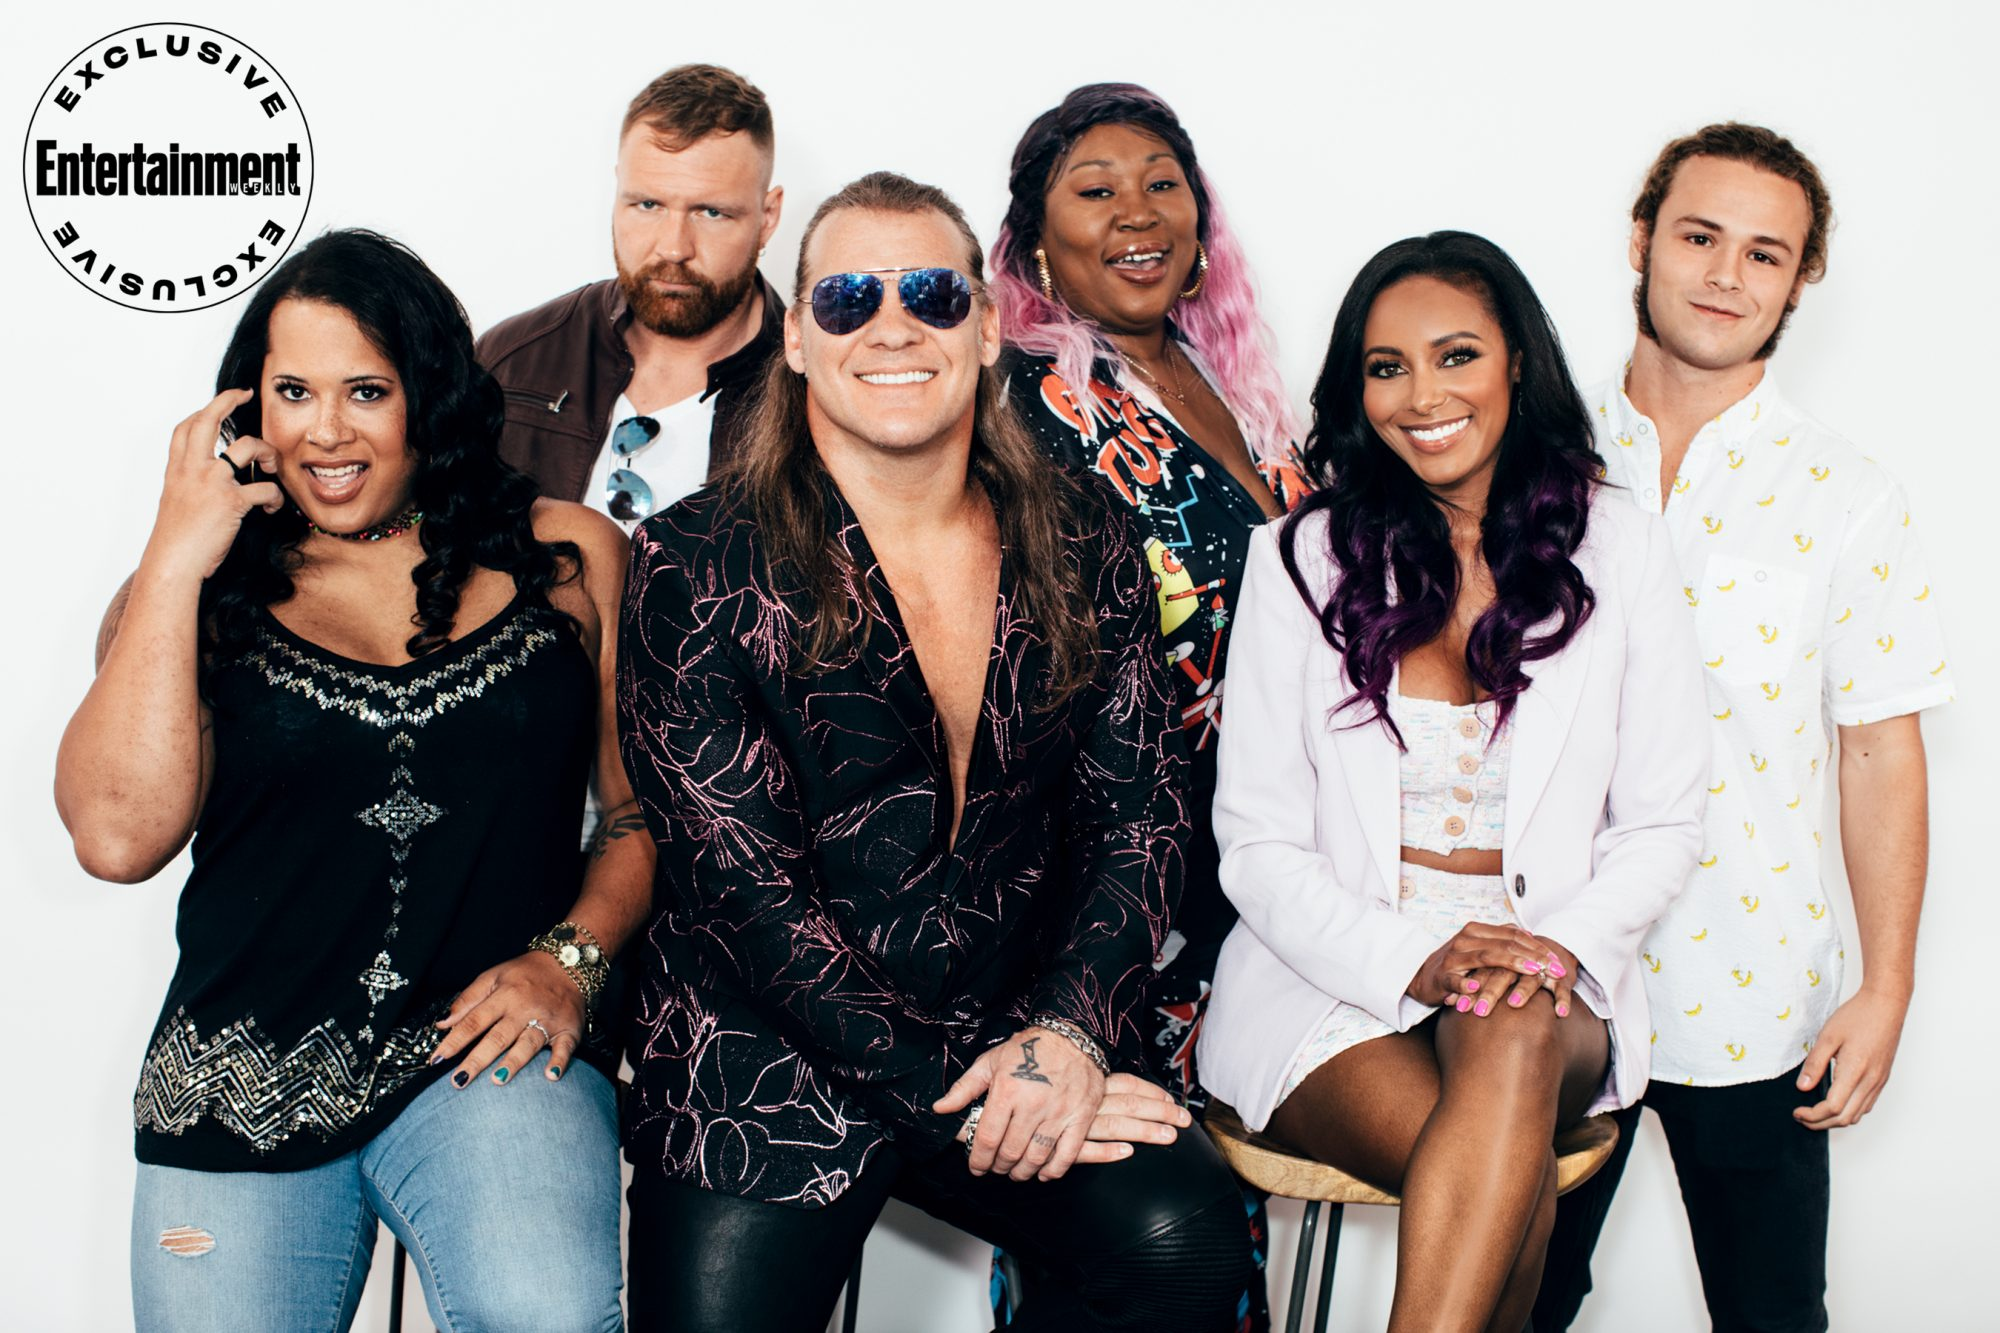 Nyla Rose, Jon Moxley, Chris Jericho, Awesome Kong (Kia Stevens), Brandi Rhodes, and Jungle Boy (Jack Perry) from All Elite Wrestling